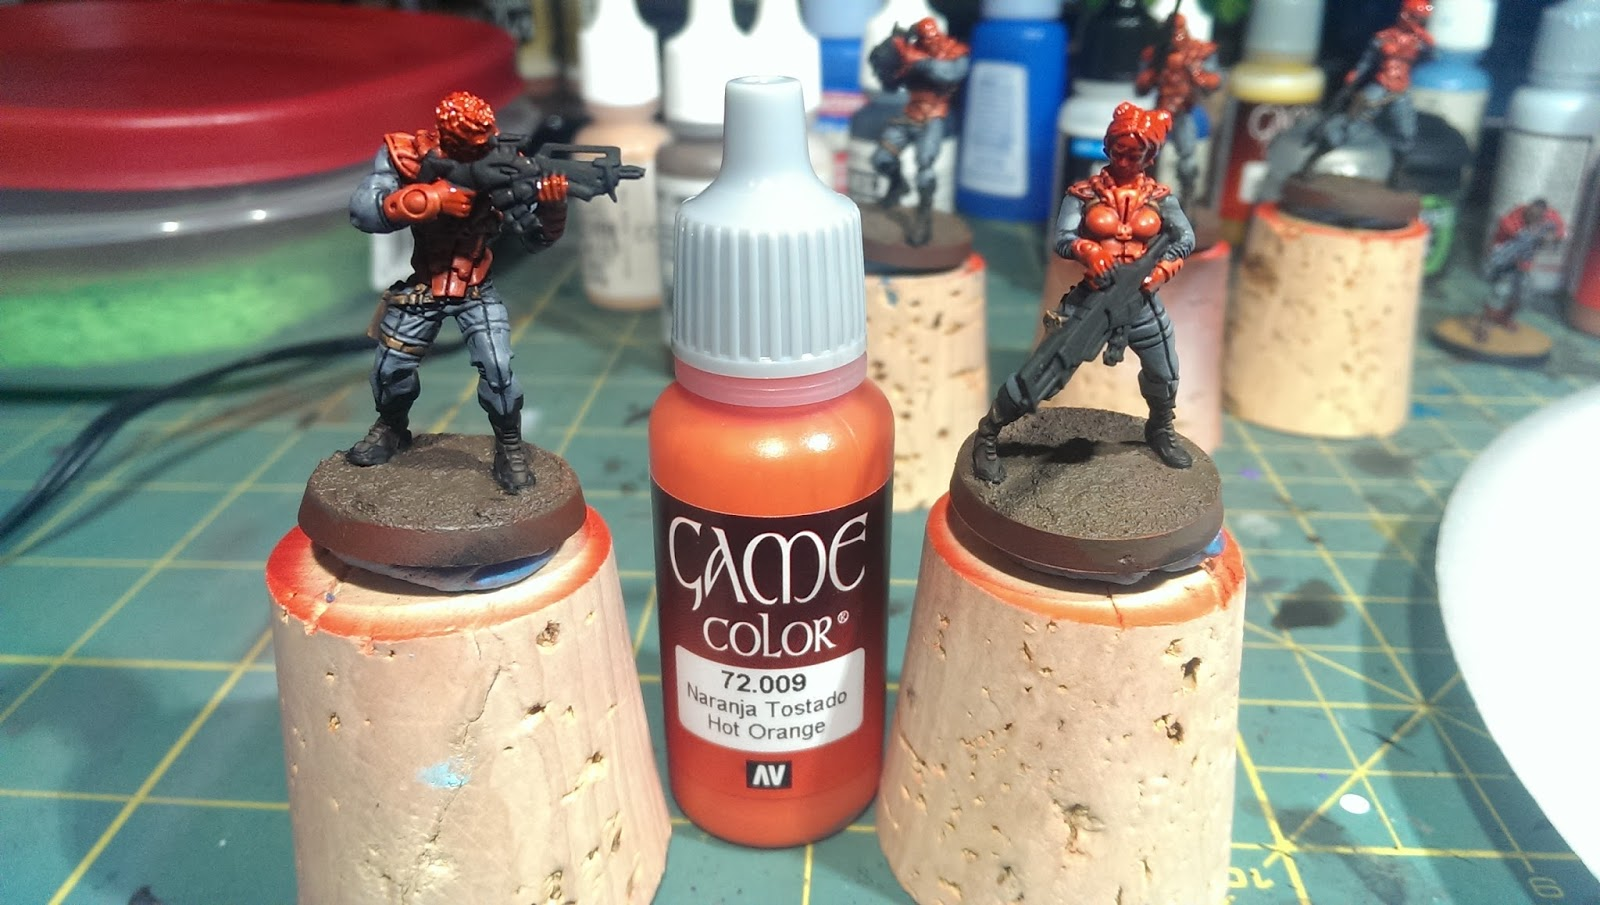 Game color vallejo - I Used A Fine Detail Brush To Highlight The Reds With Vallejo Game Color 72 009 Hot Orange Applying The Mat Varnish Before This Step Is Important So The